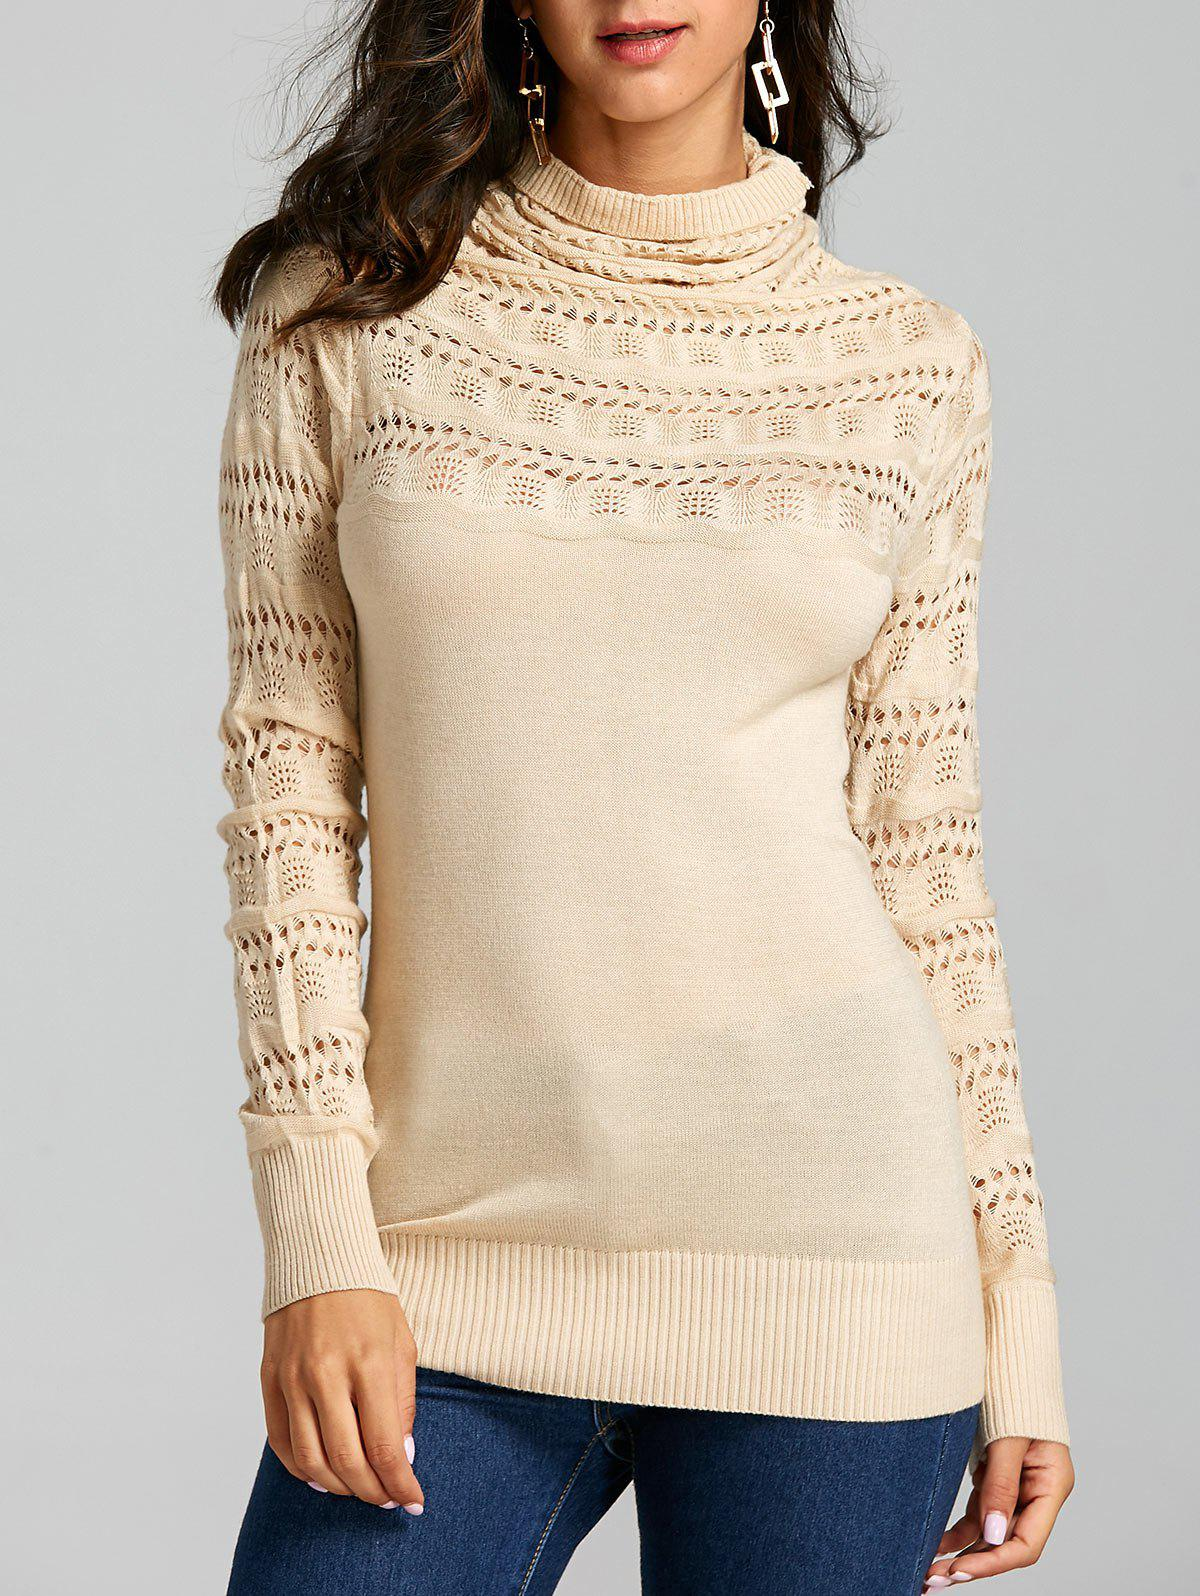 Cowl Neck Open Knitted Sweater 231509005